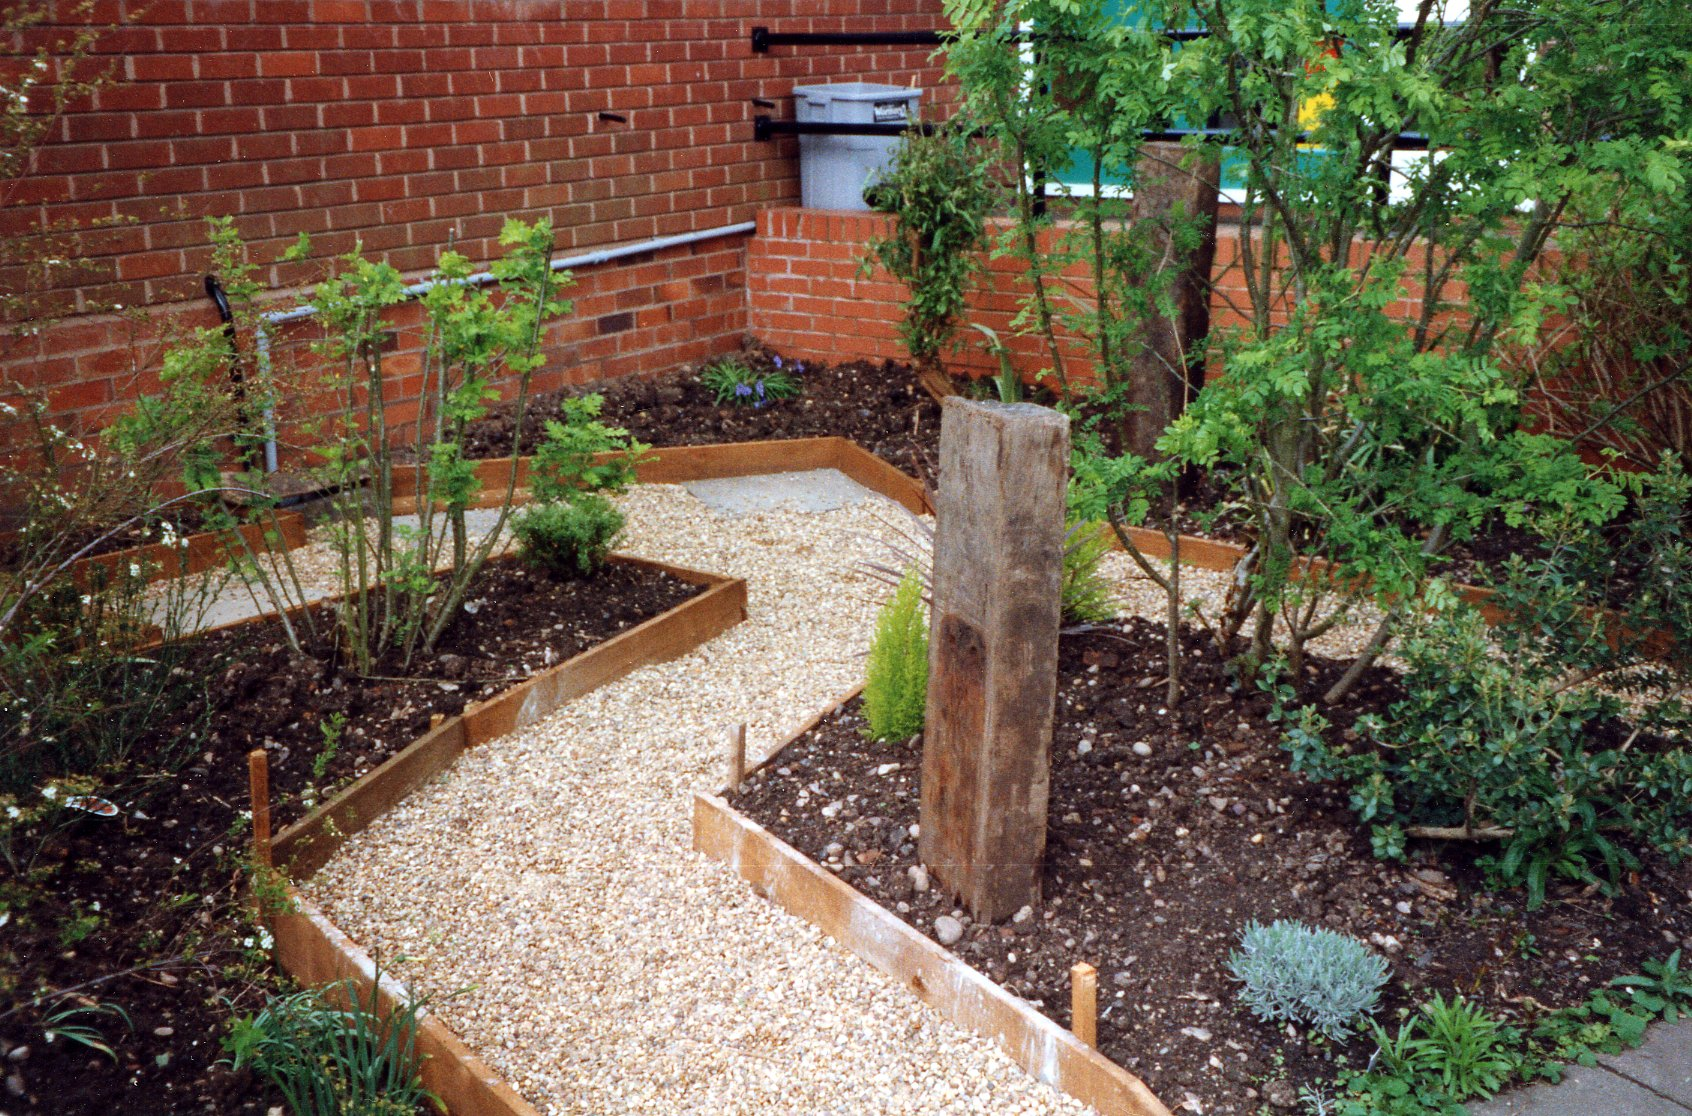 Garden Pathway Design Ideas with Some Natural Stones ... on Backyard With Gravel Ideas id=23532